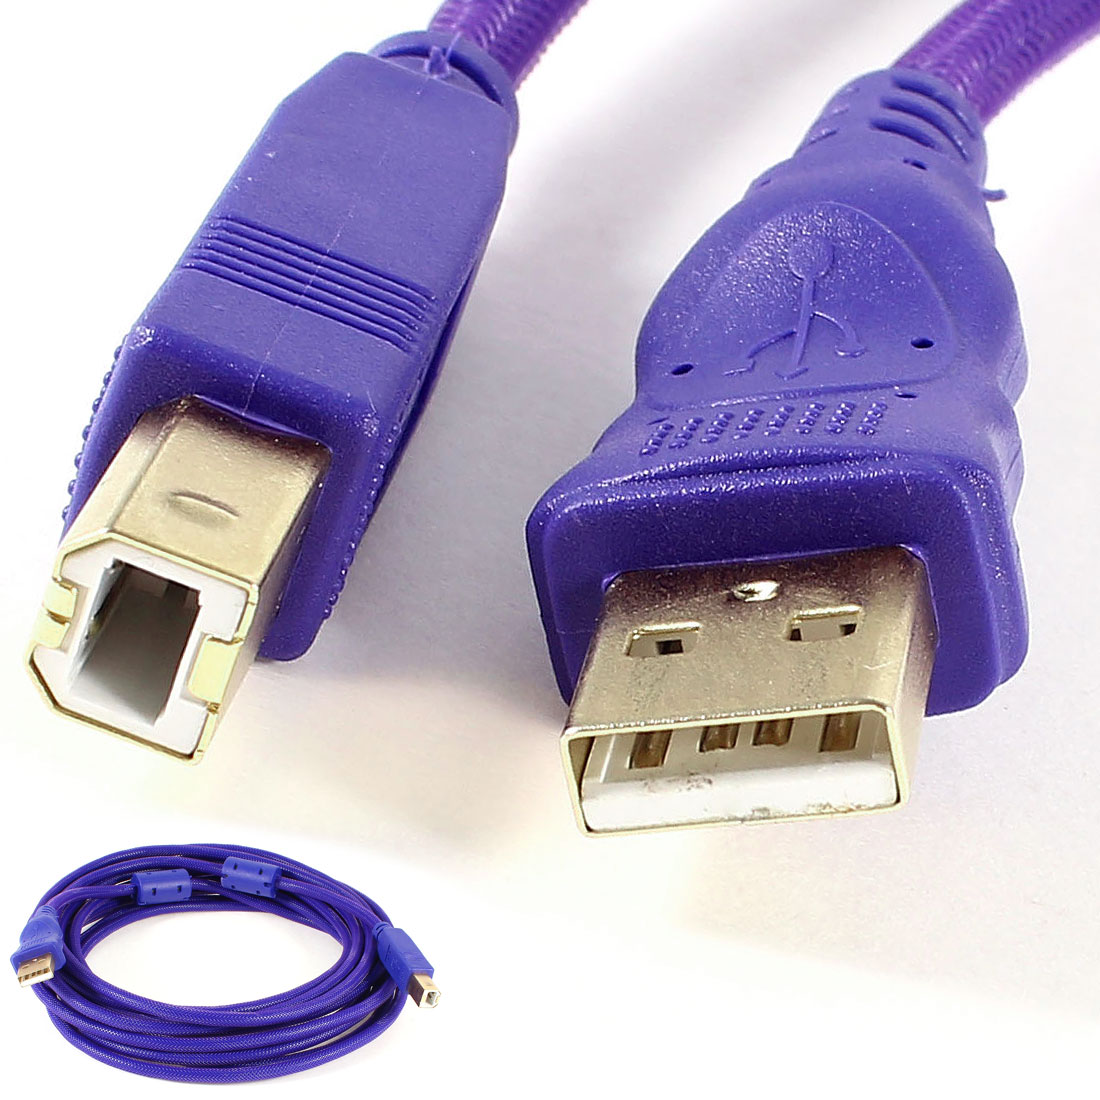 5M 16.4Ft USB 2.0 Type A Male to B Male High Speed Printer Data Cable Purple